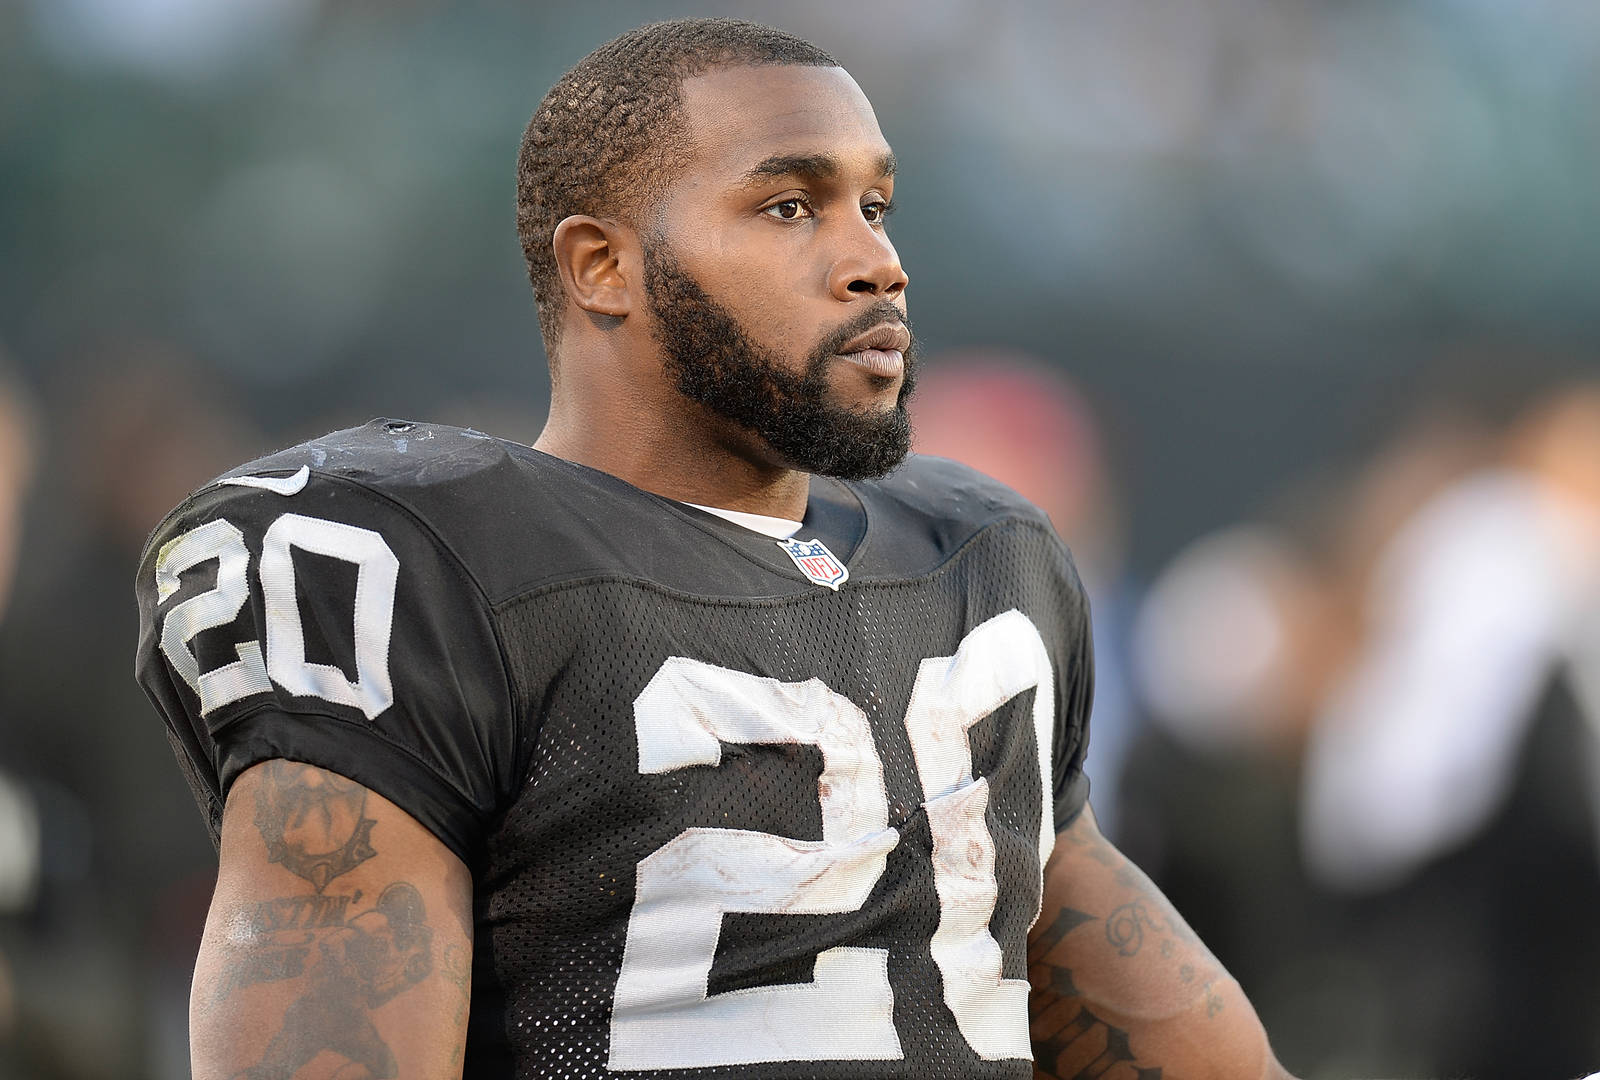 Darren McFadden Formally Charged With Whataburger Drive-Thru DWI